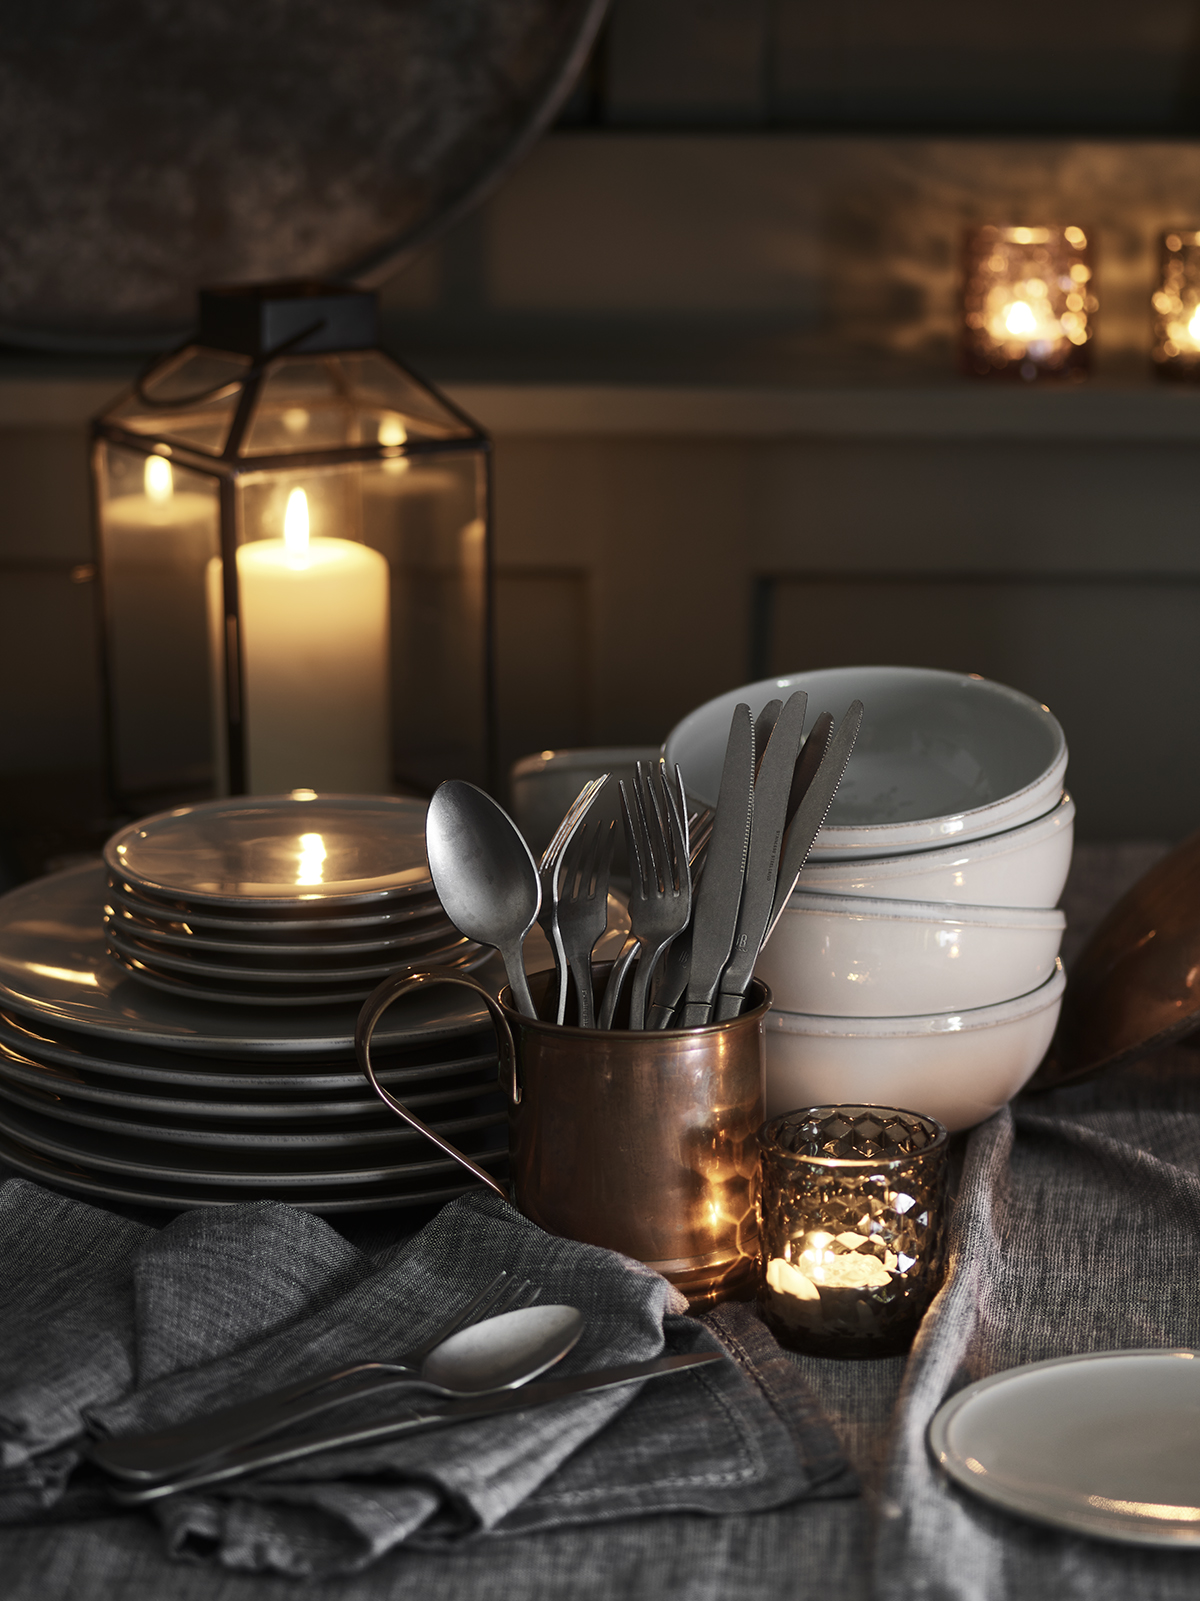 Autumn table - candles & tableware